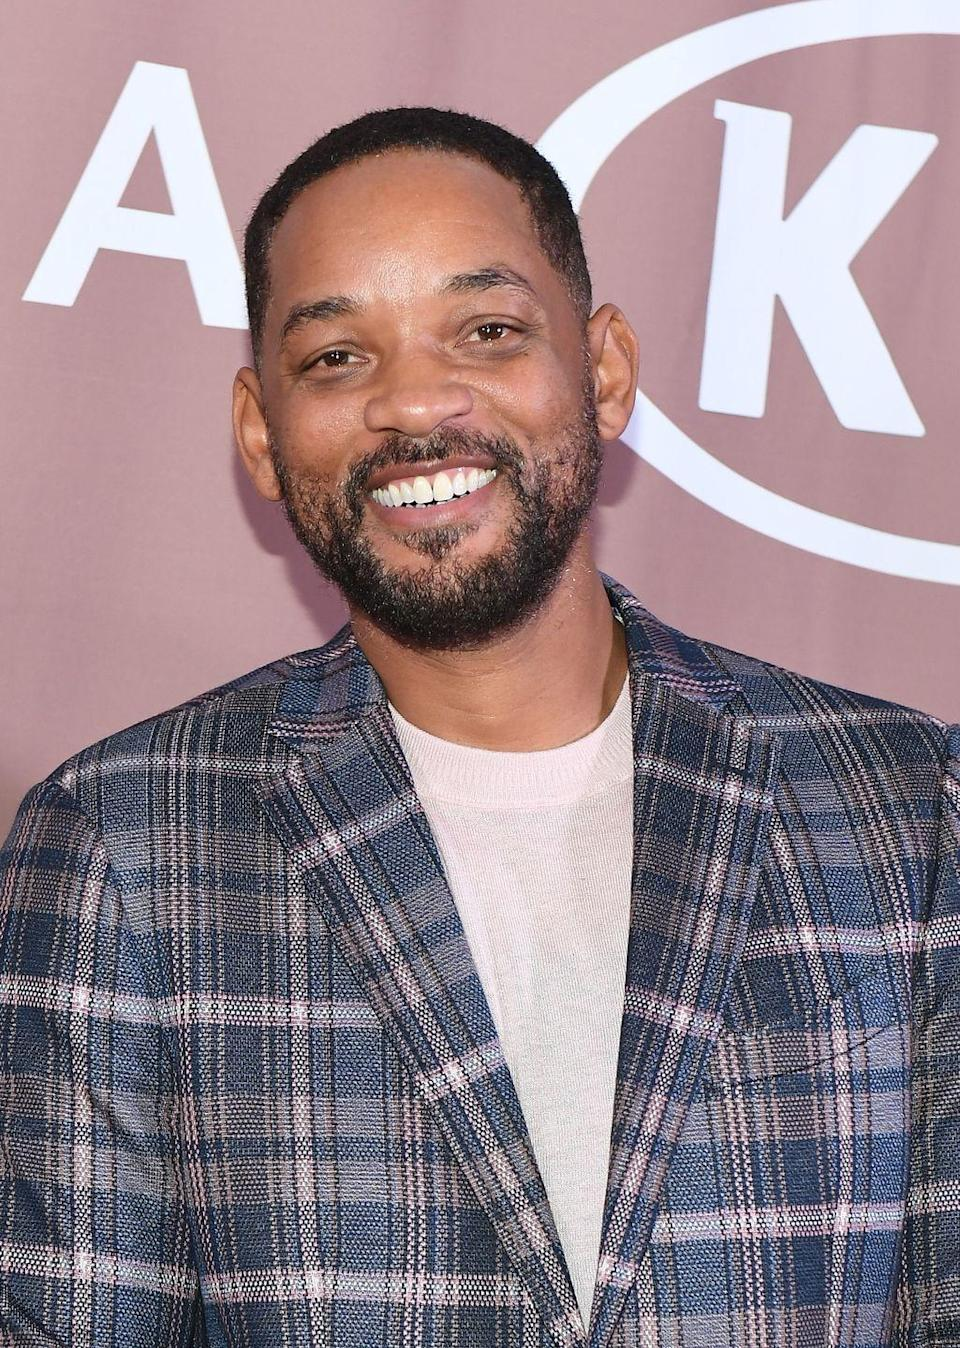 <p>We're pretty sure the Fresh Prince of Bel-Air would know how to get a laugh or two from an SNL audience if given the chance.</p>